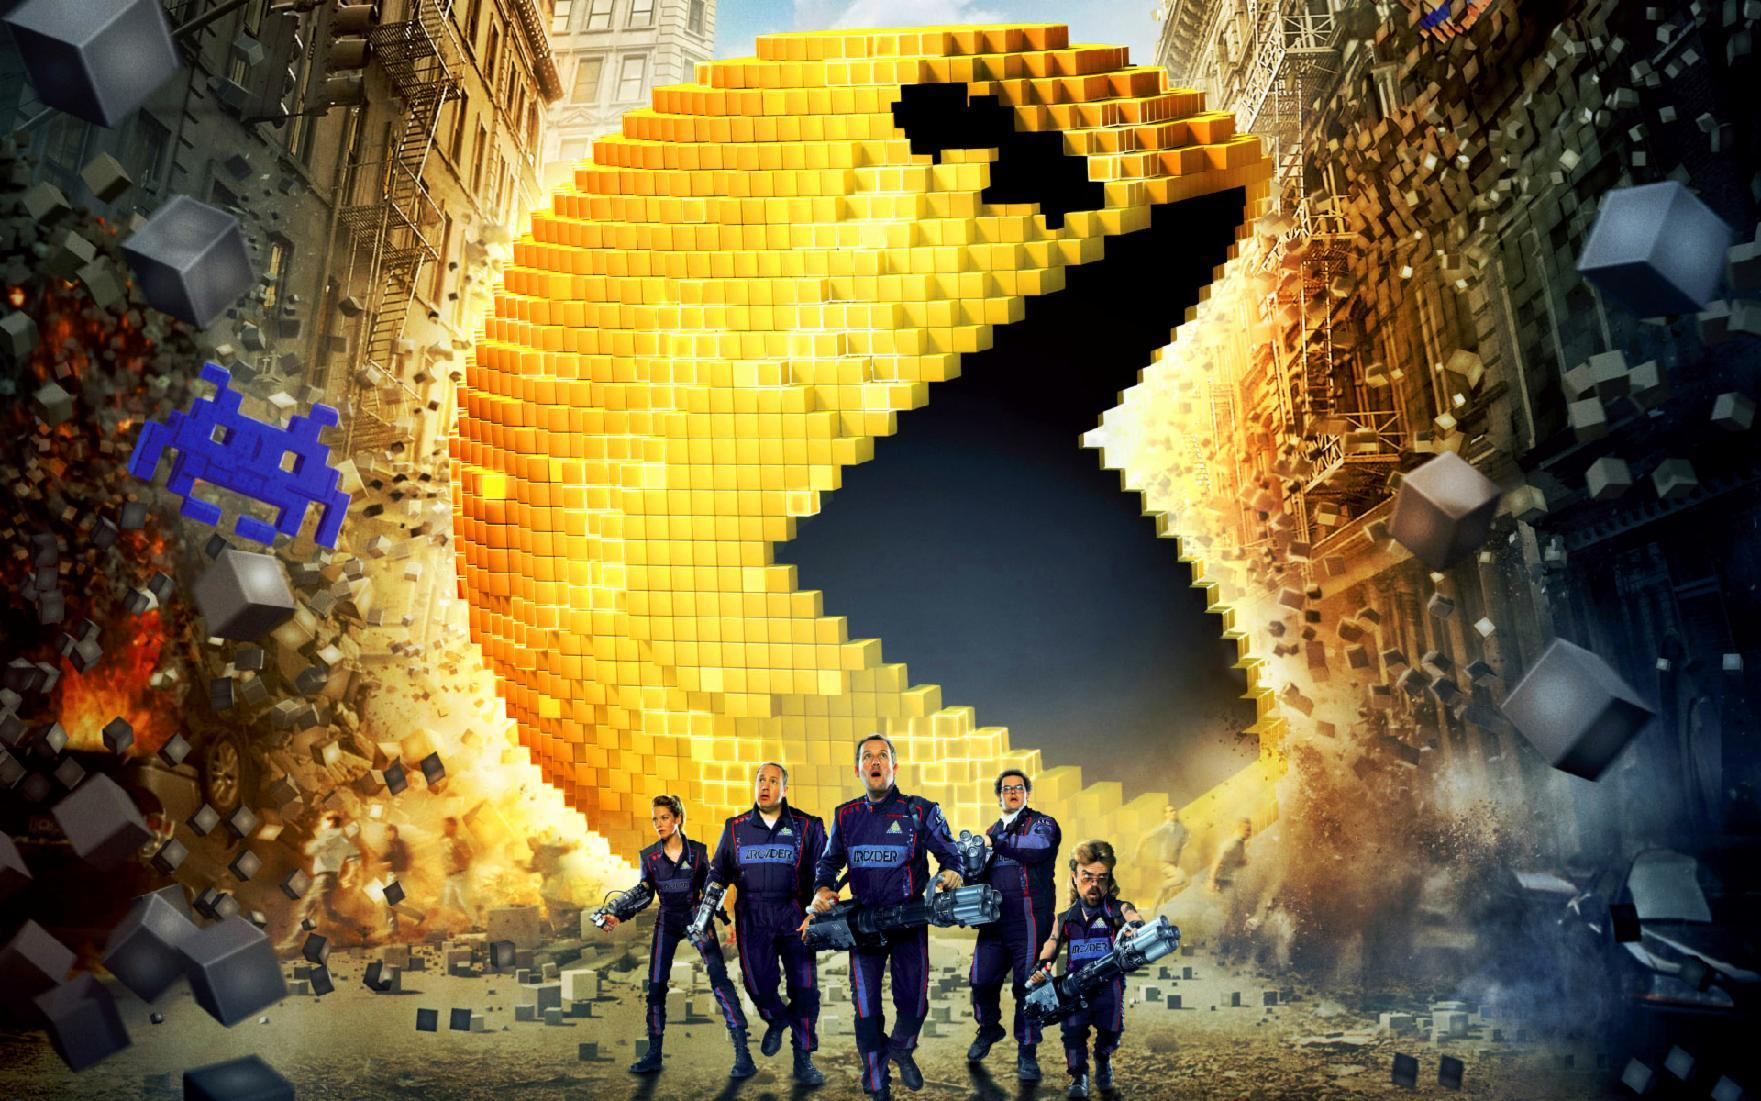 Did you enjoy the movie Pixels?